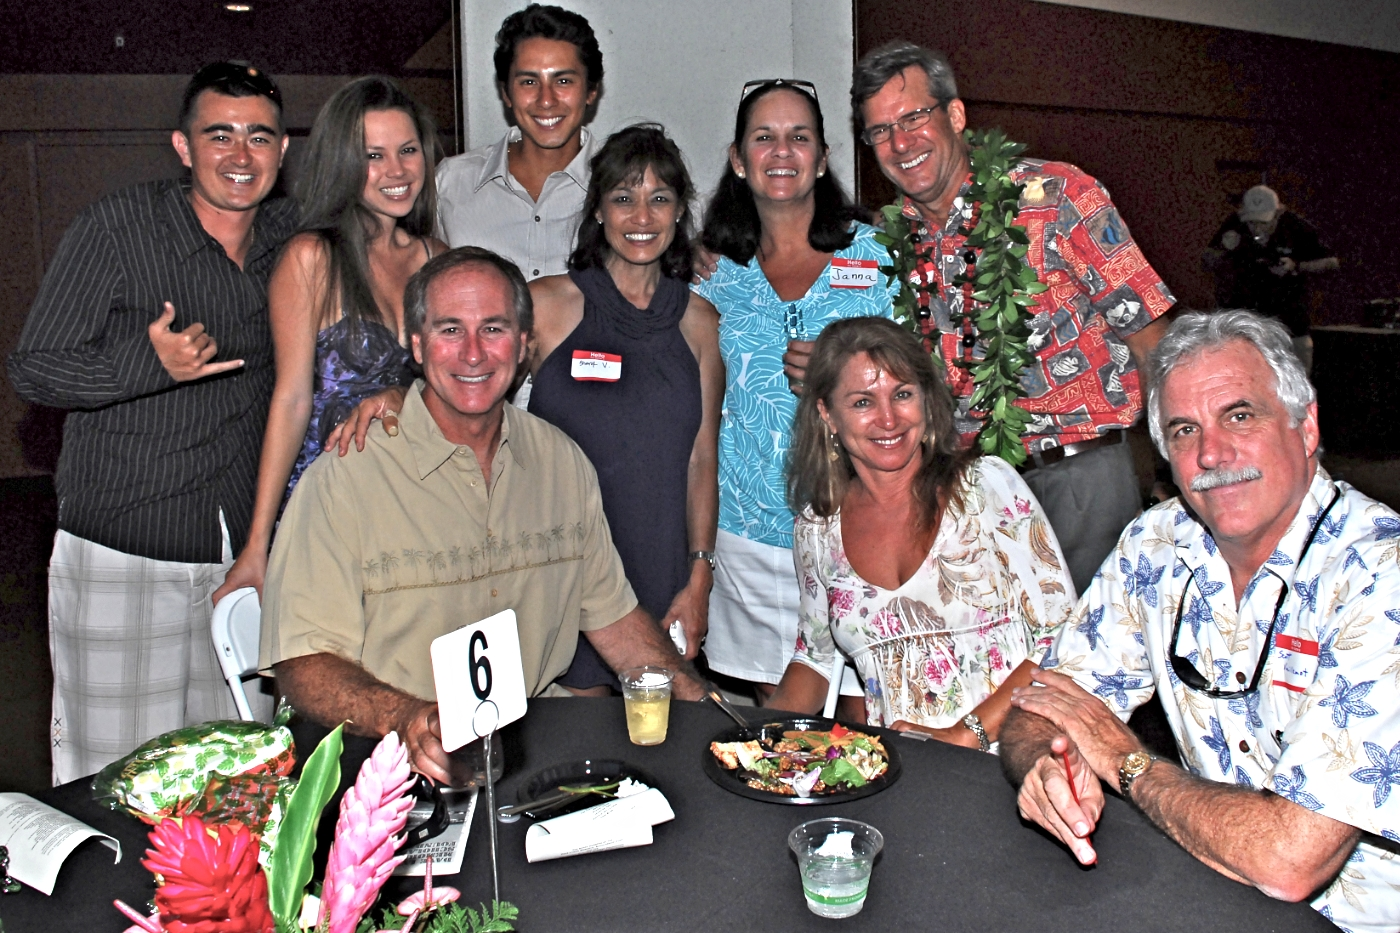 2010 SCOTT & SHERYL VUILLEMOT WITH THEIR FRIENDS.jpg